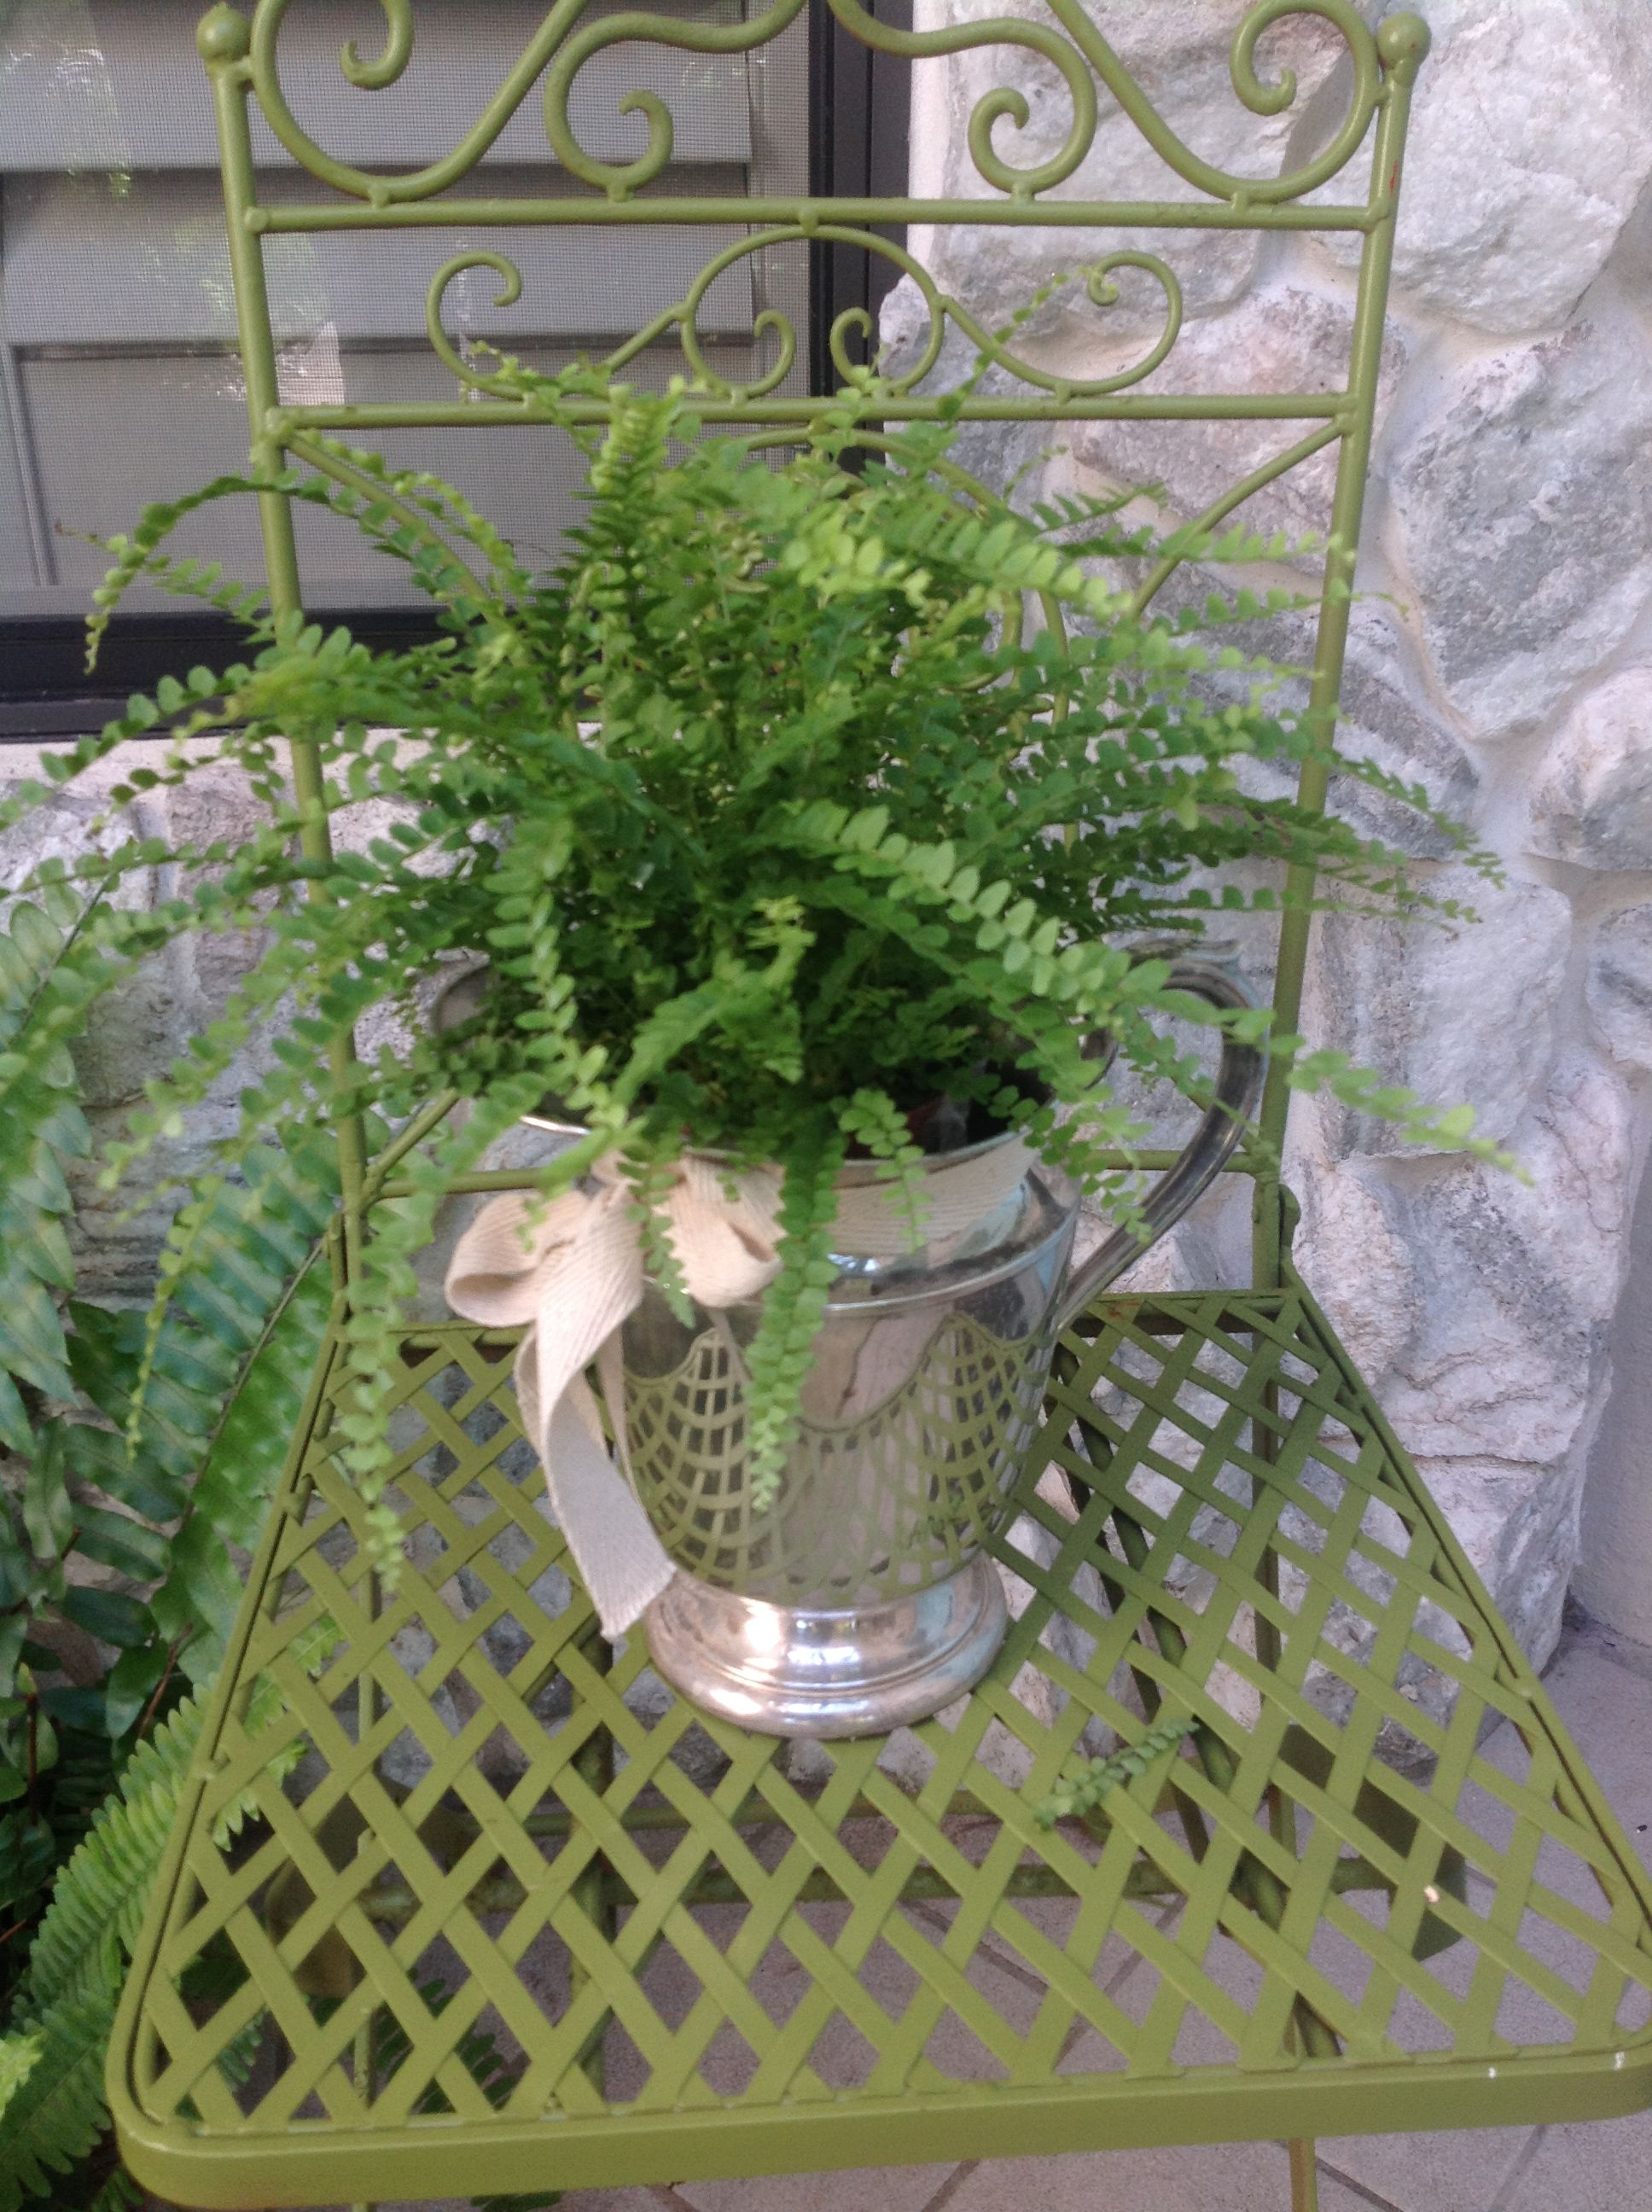 I found this old Silver-plate Pitcher and turned it into a planter.      I polished the Pitcher, crumpled up a piece of foil and placed it inside the pitcher for the fern to sit on.  Wrapped the fern pot with a piece of cling wrap, placed it on top of the foil inside the pitcher,  added a tie/ribbon, and put it on the porch.   I just love bringing the inside outside.